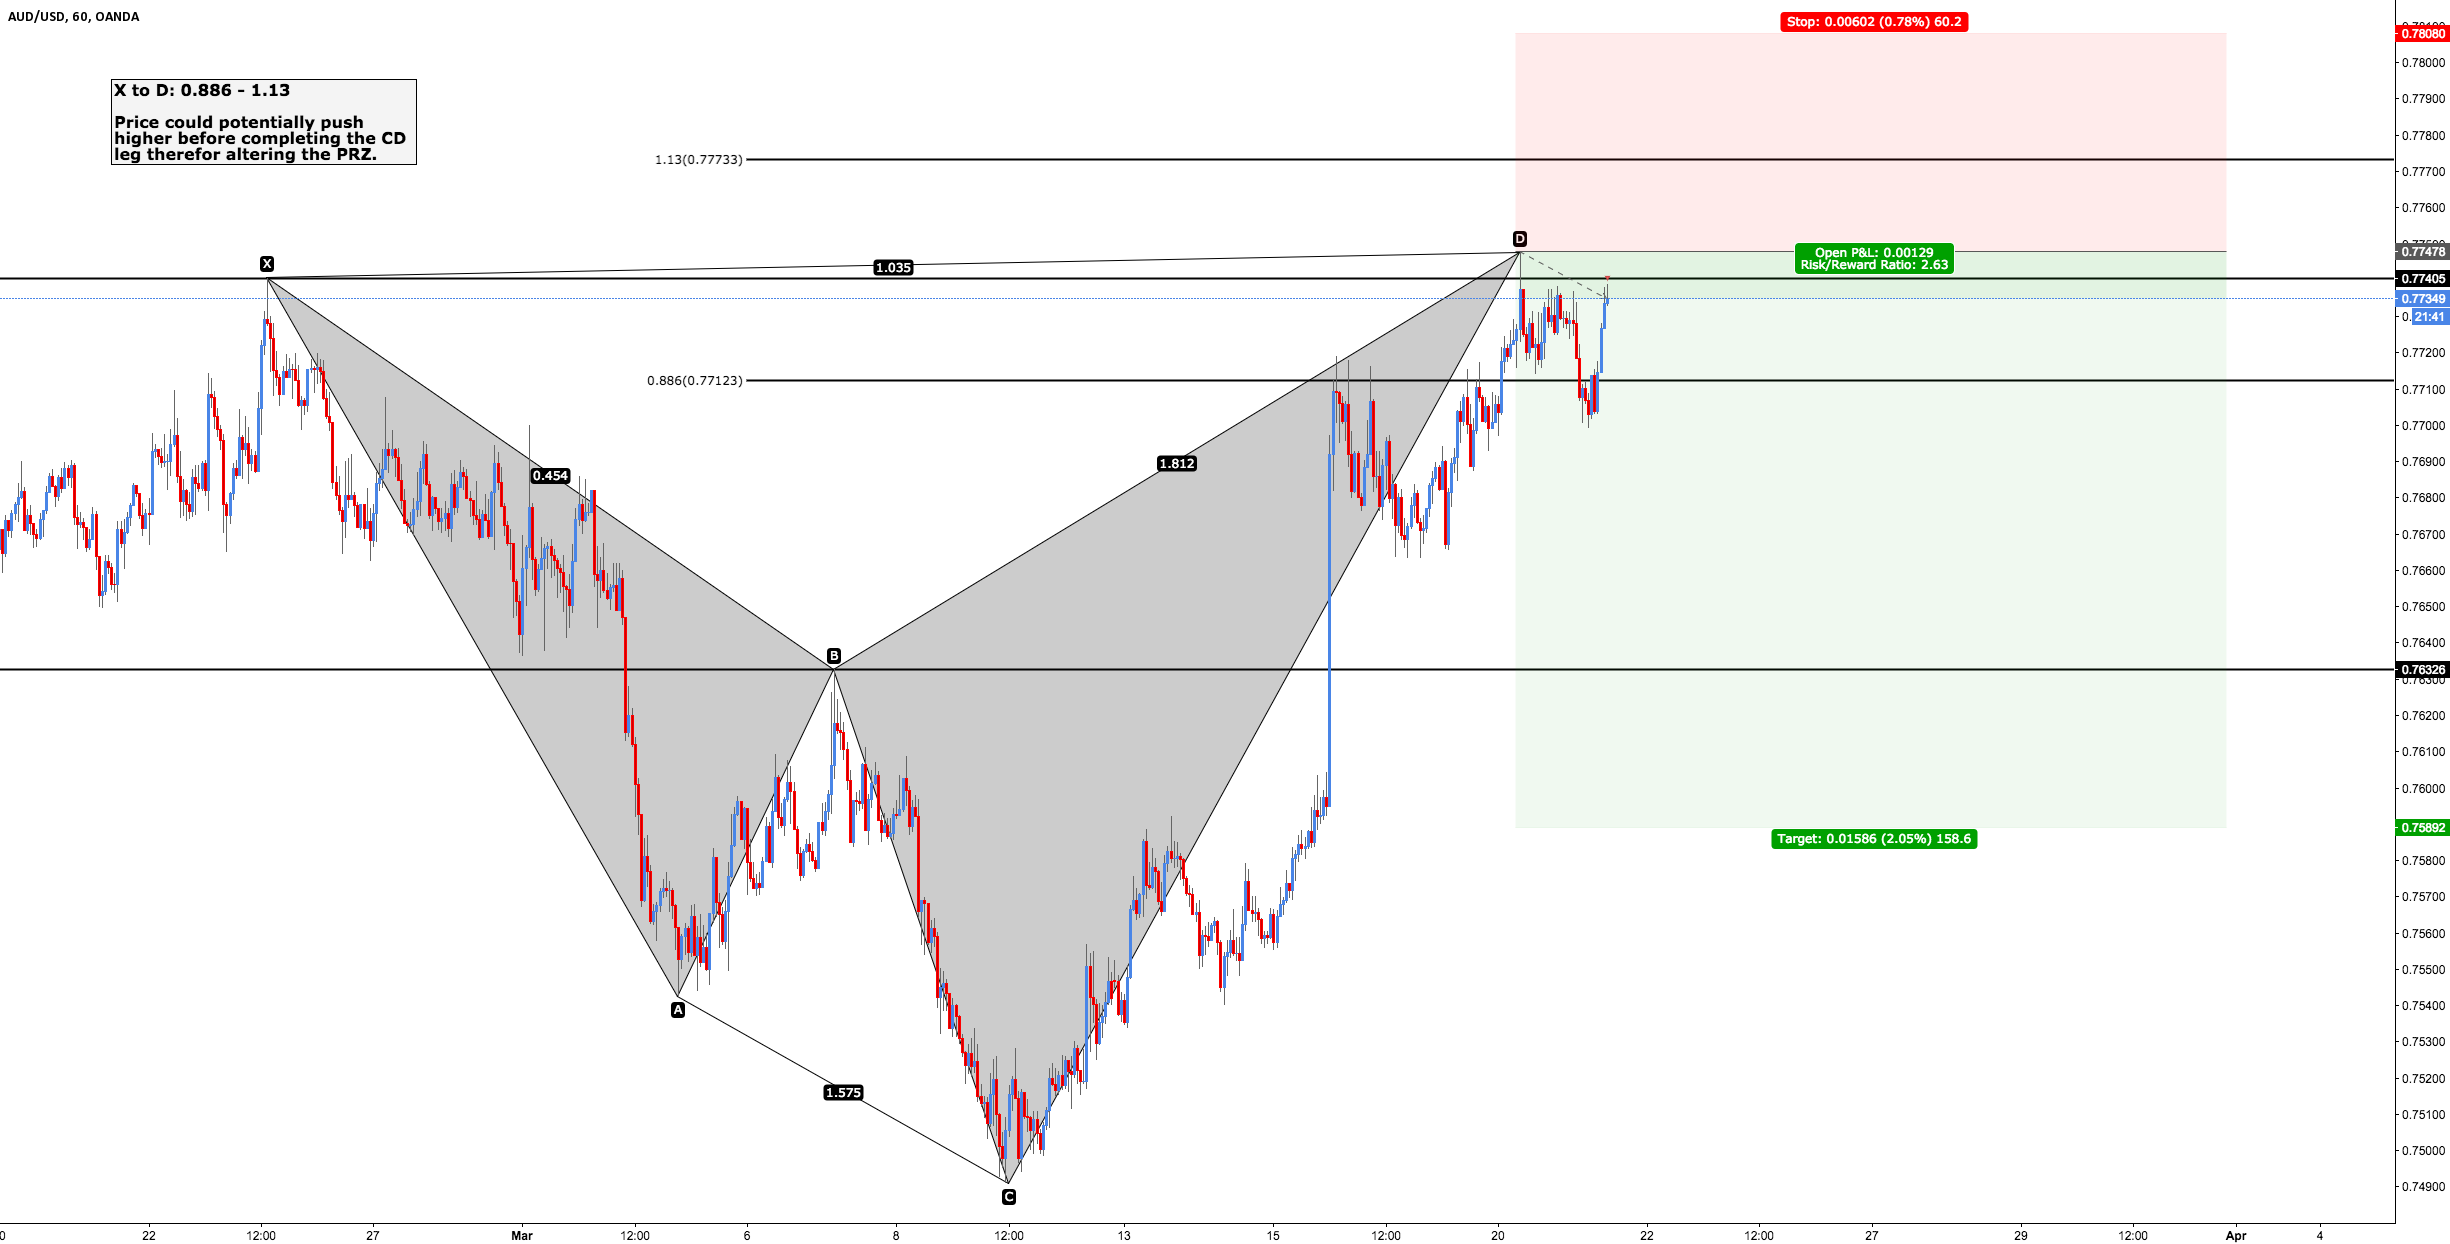 AUD/USD - Bearish Shark